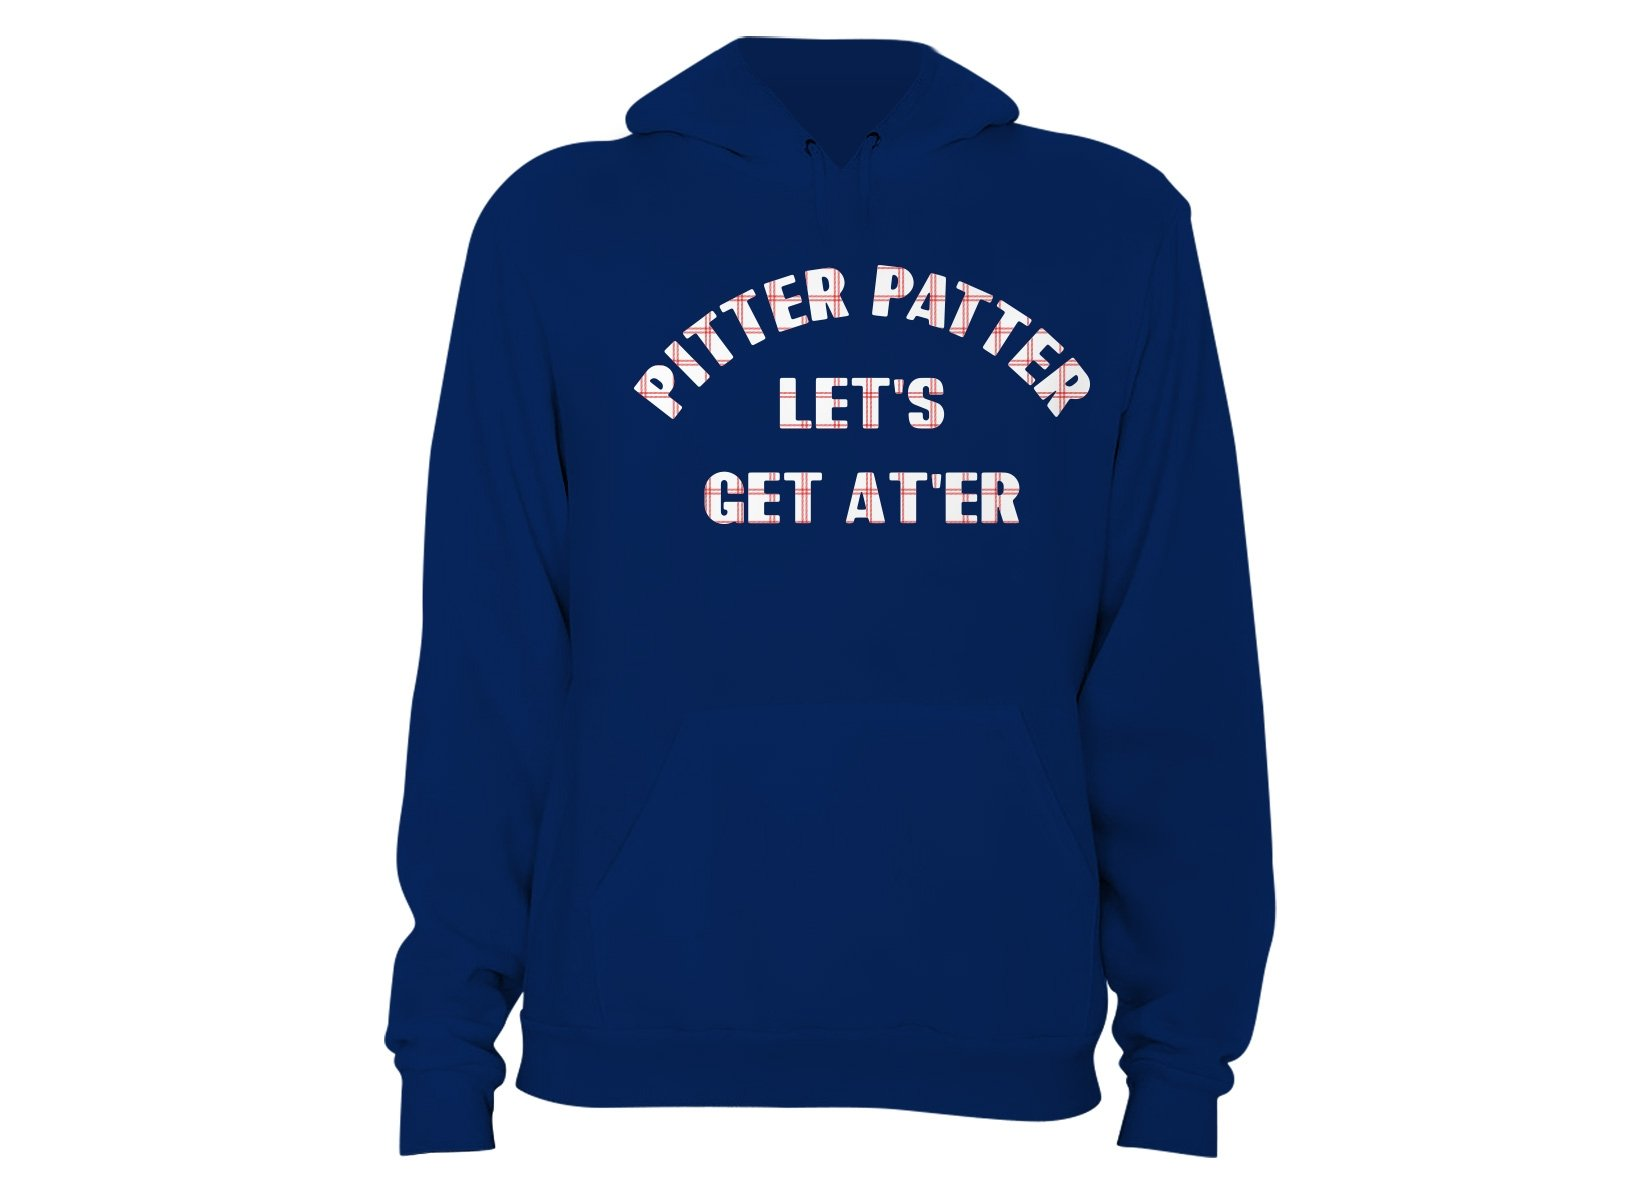 Pitter Patter Let's Get At'er on Hoodie